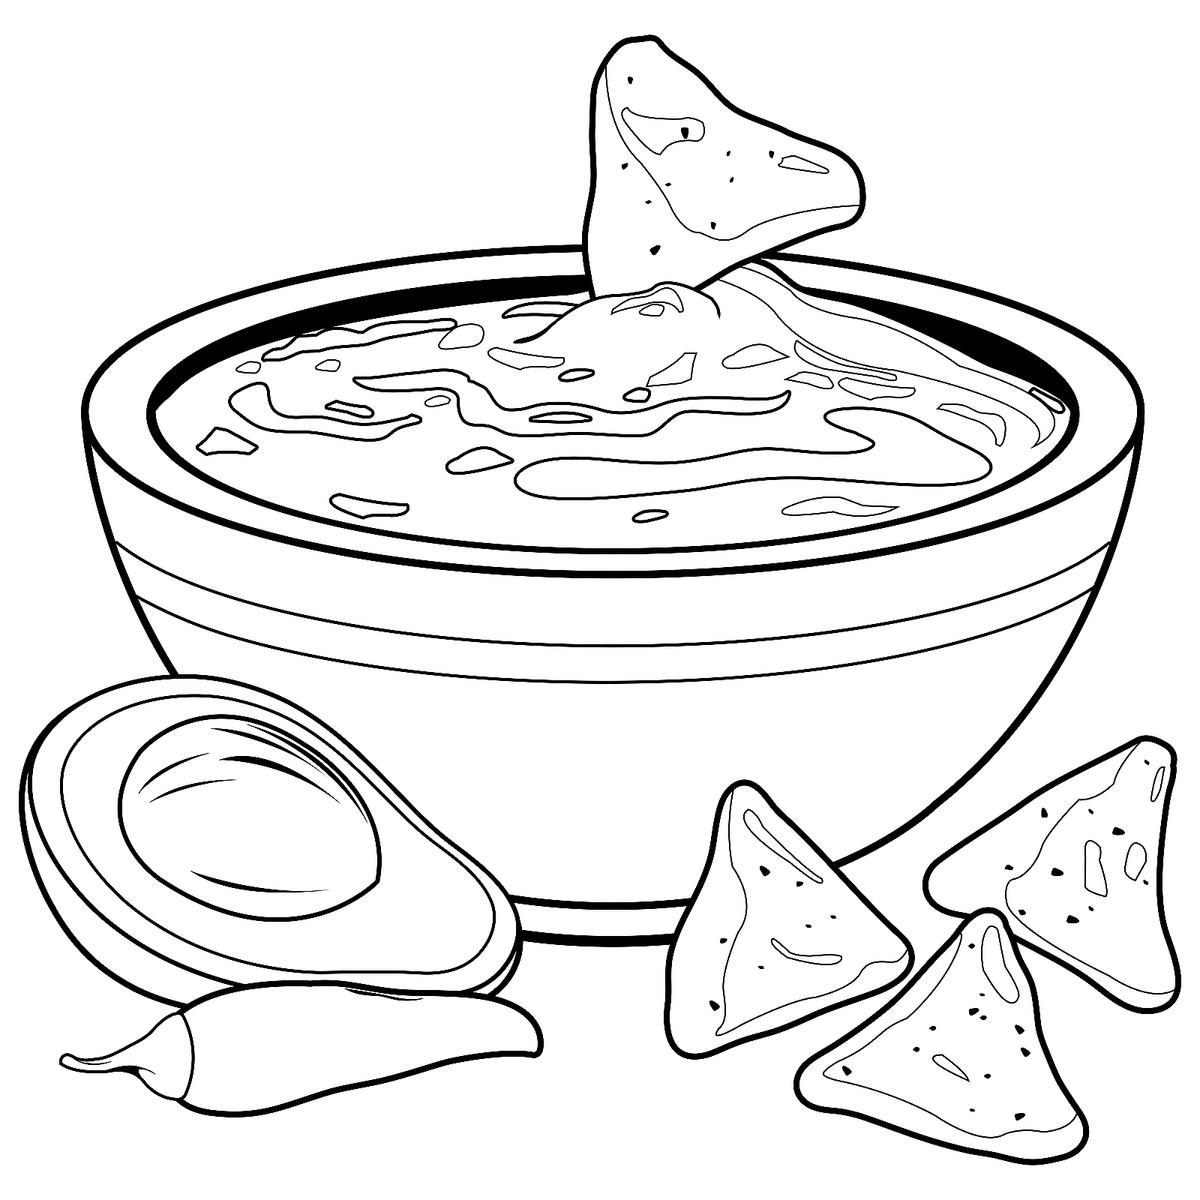 food coloring book free easy to print food coloring pages tulamama coloring book food